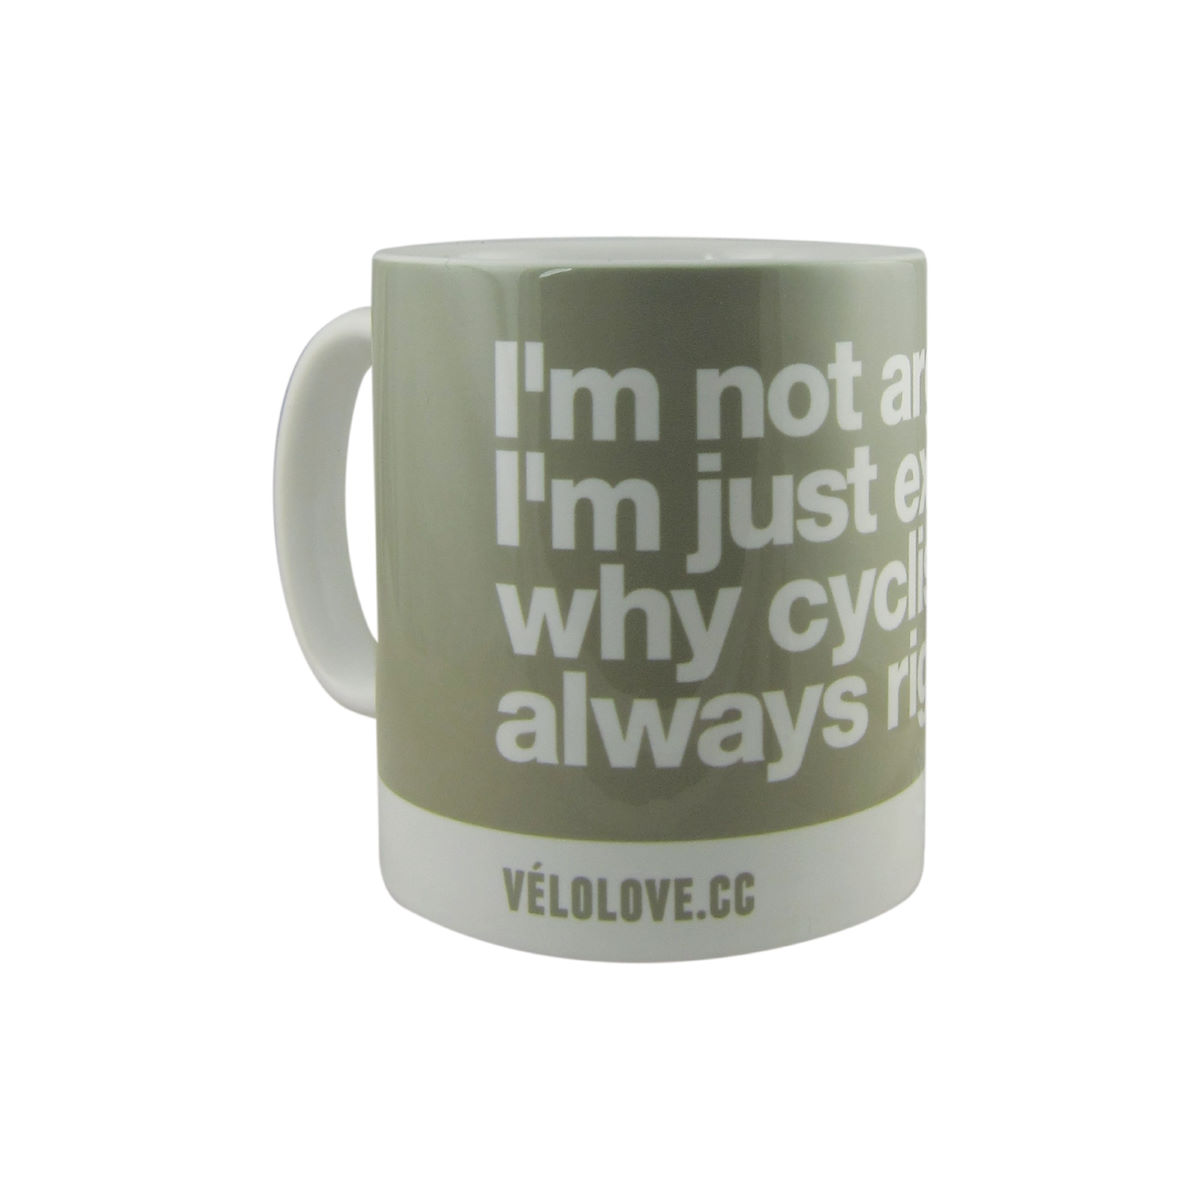 Image of Tasse Velolove I'm not arguing, I'm just explaining why cyclists are always right